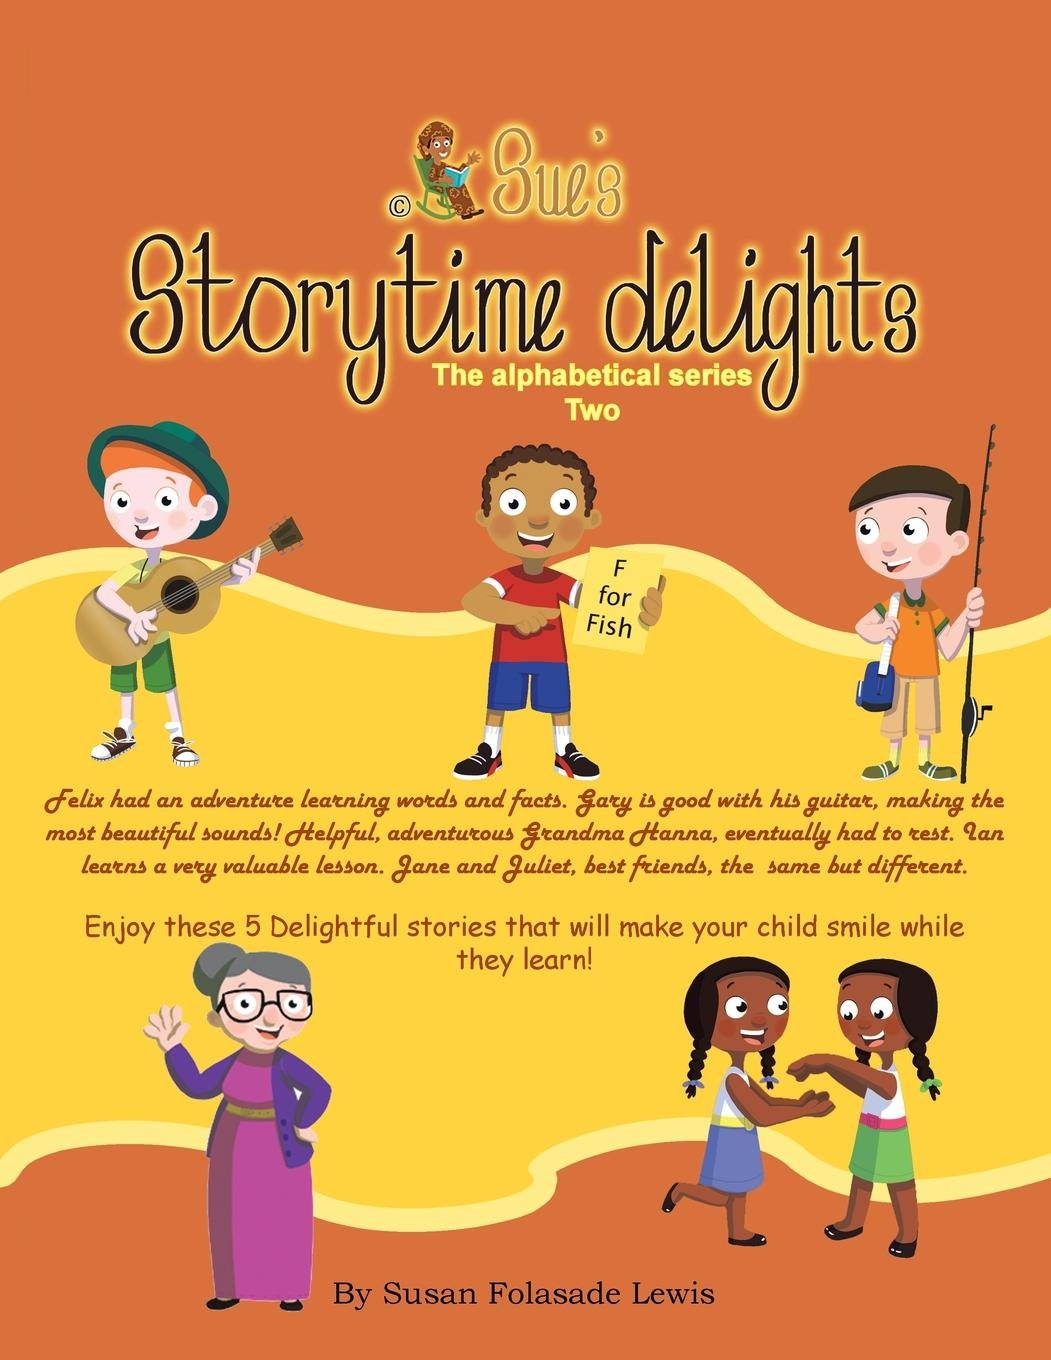 Sue's storytime delights: *Felix says, *Gary's Guitar, *Grandma Hanna, *Pet adventure: Ian goes fishing, *Jane and Juliet pdf